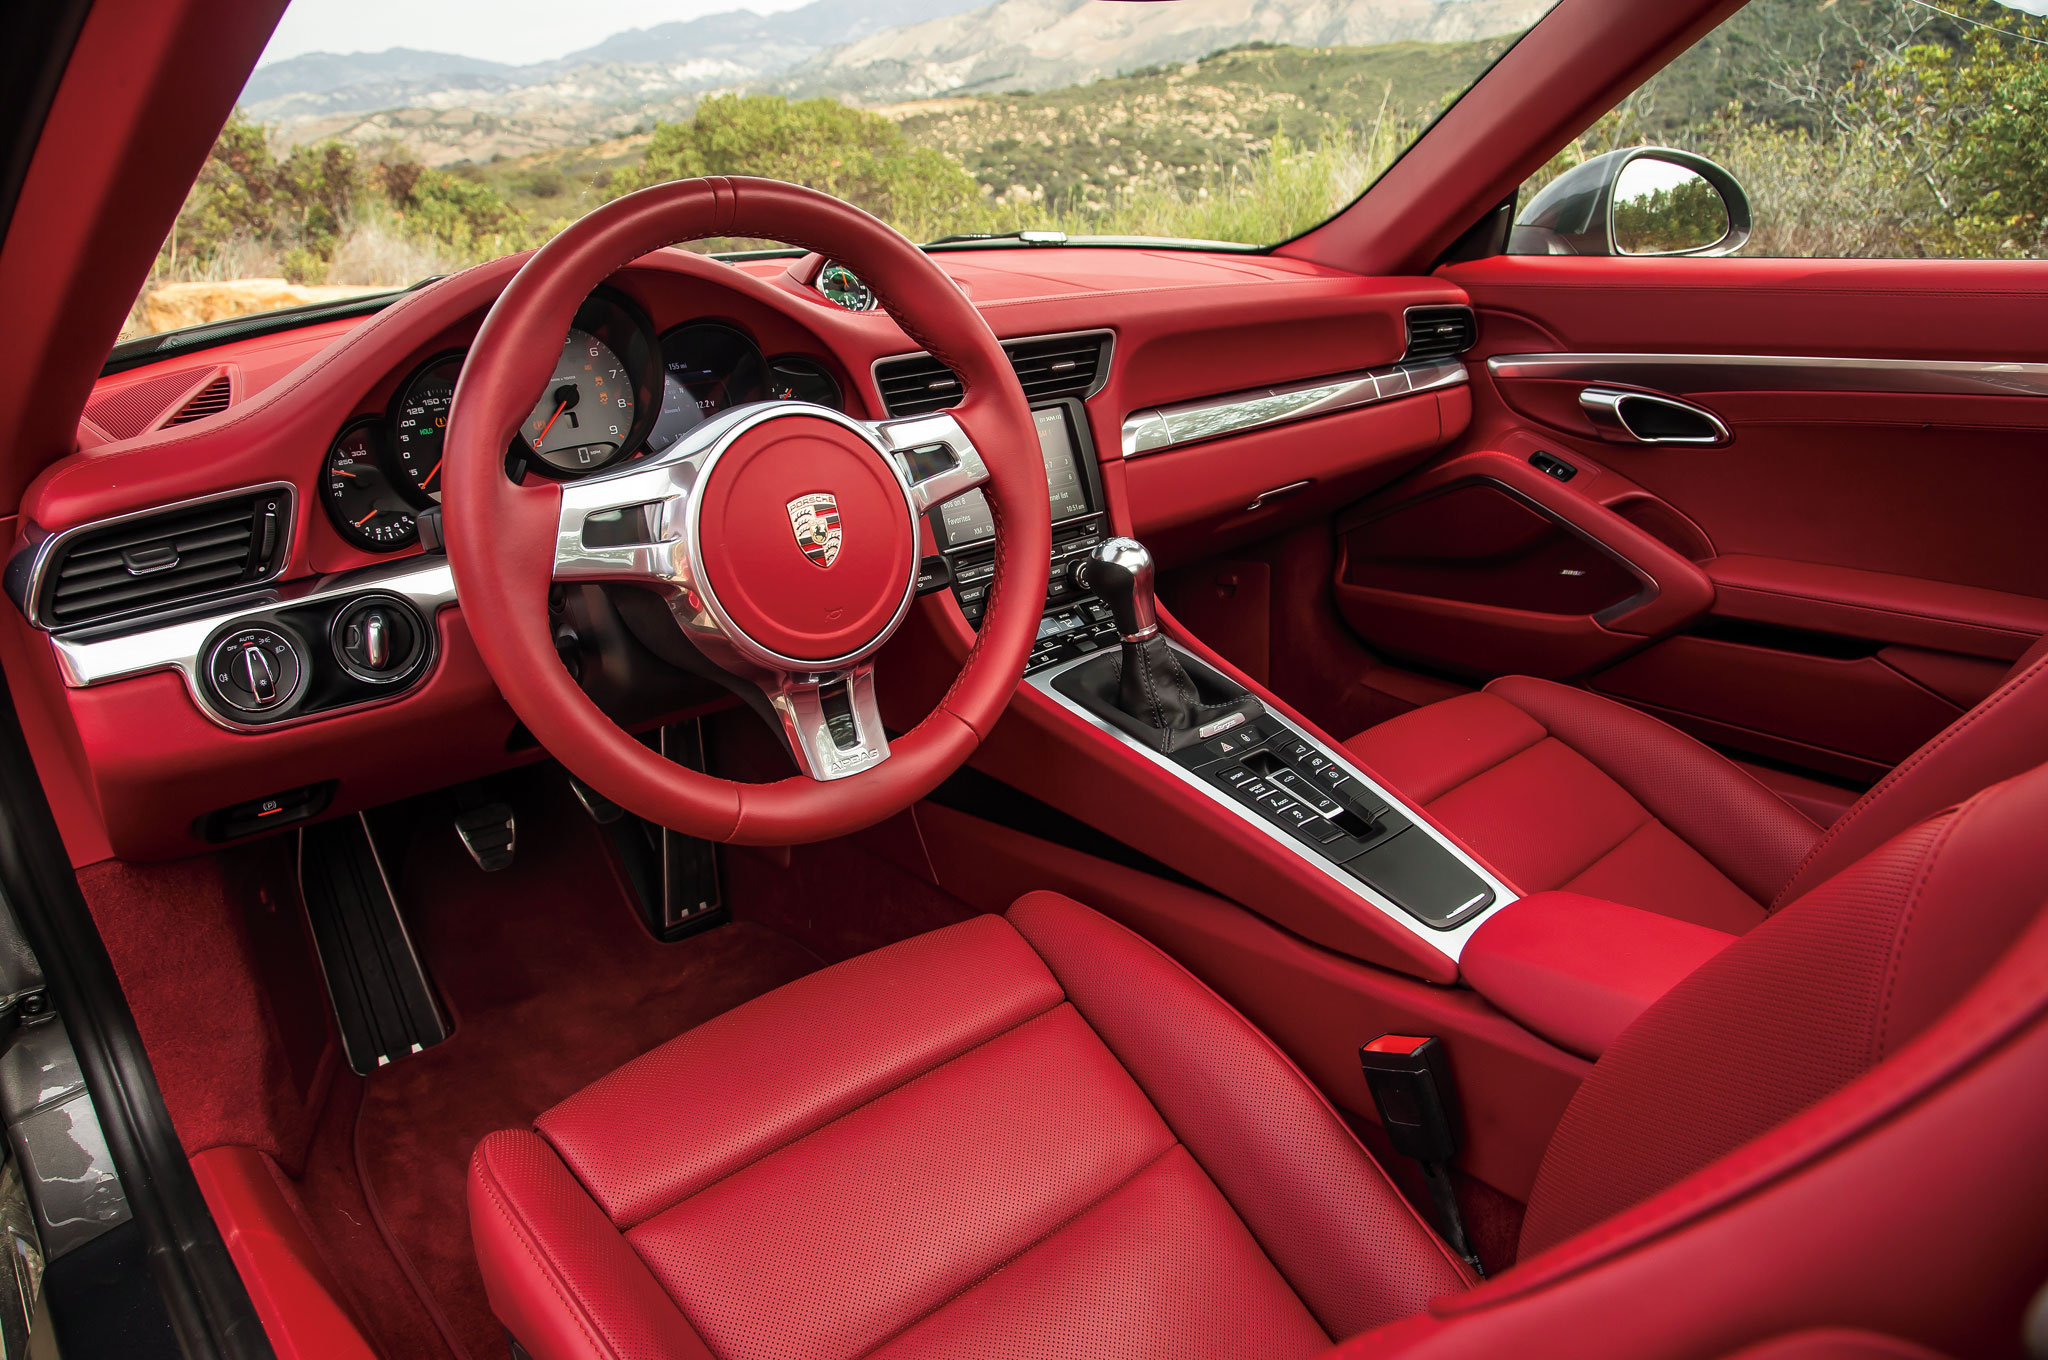 The new Targa interior seems inspired in equal parts by the early 911 and a Boeing 747 flight deck.